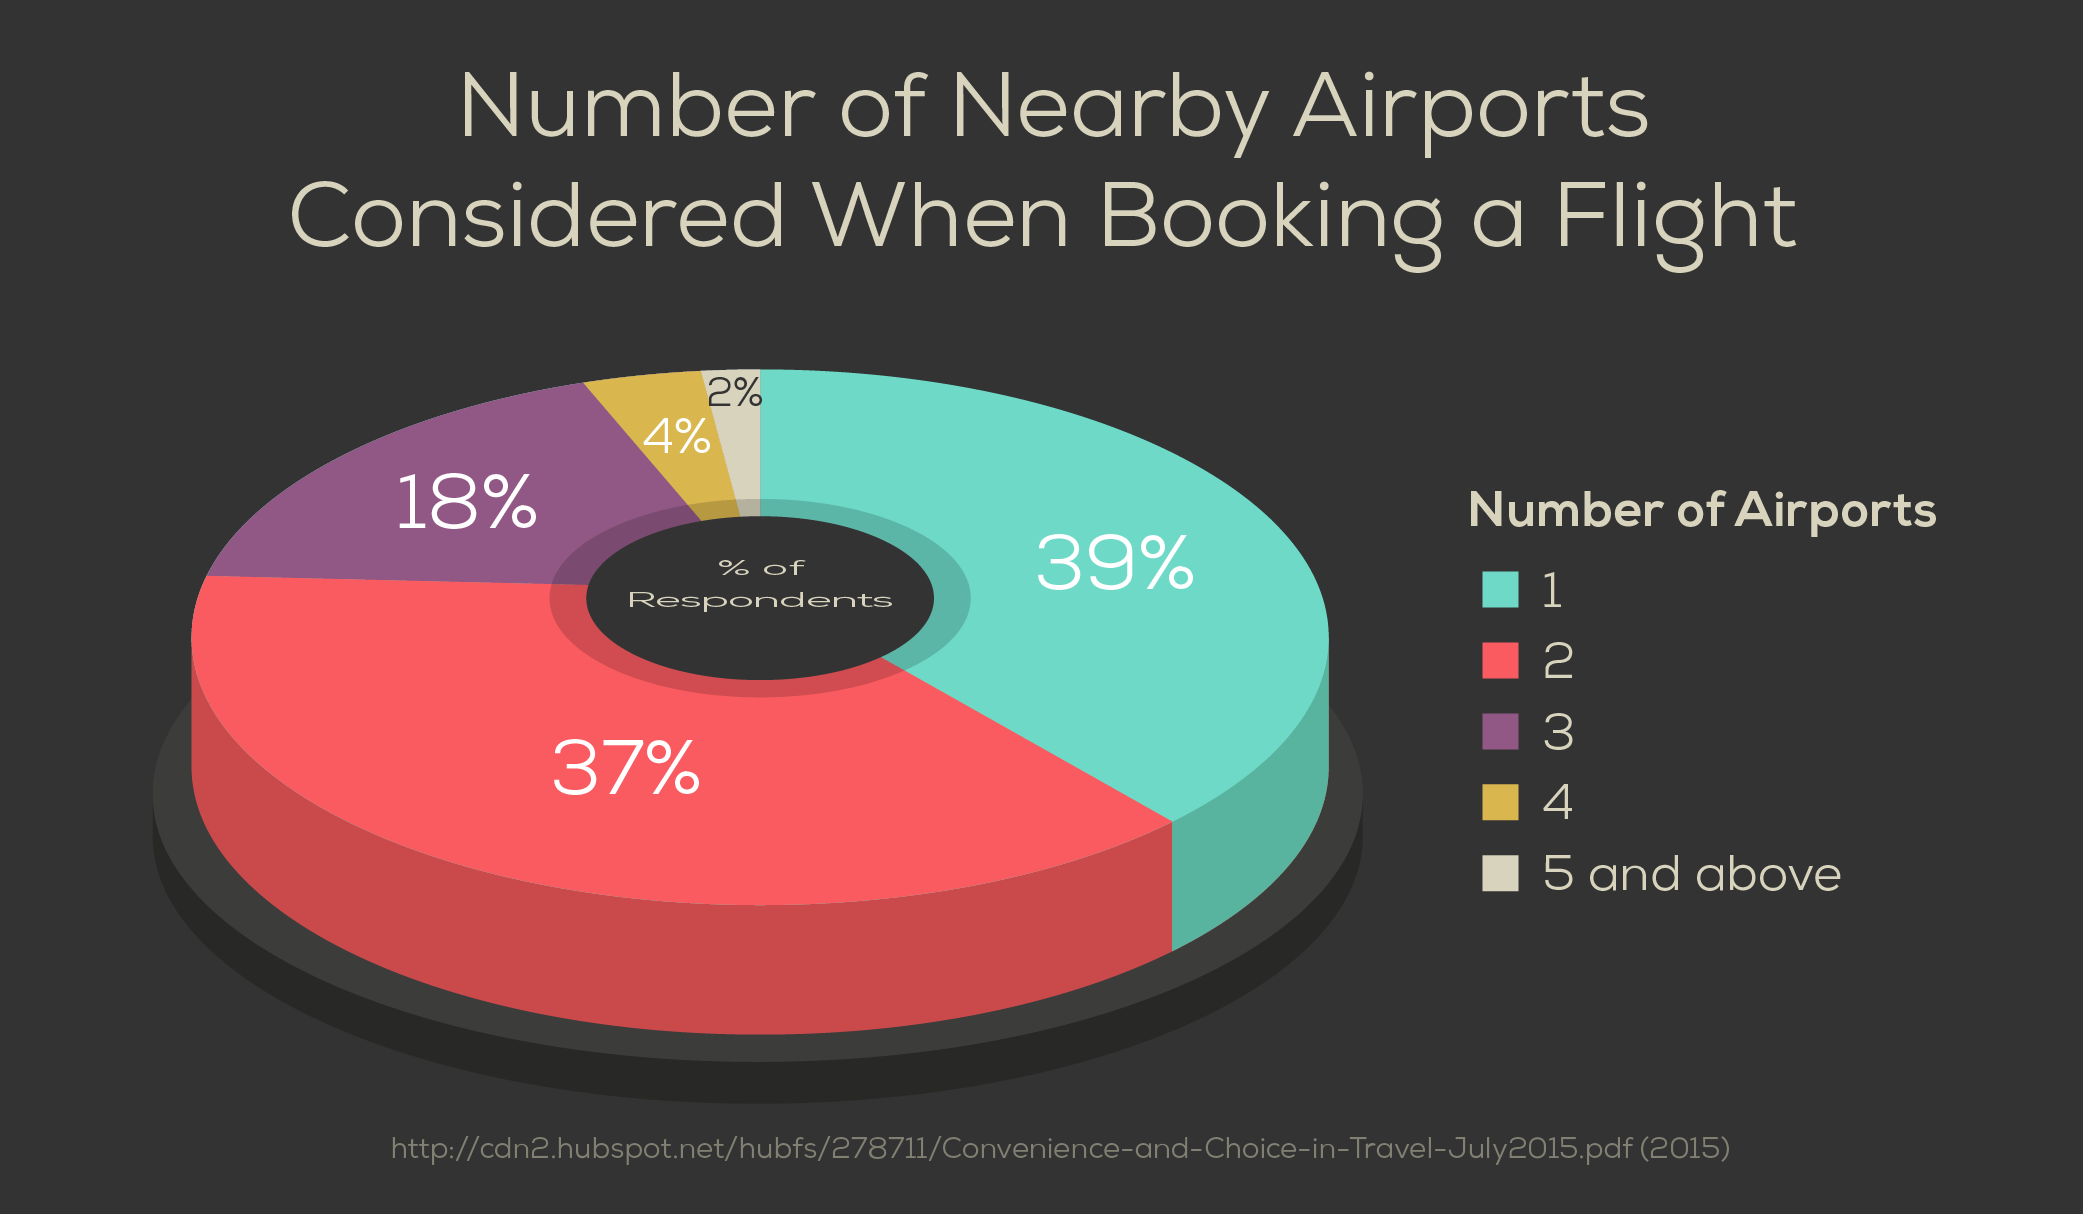 Number of Nearby Airports Considered When Booking a Flight